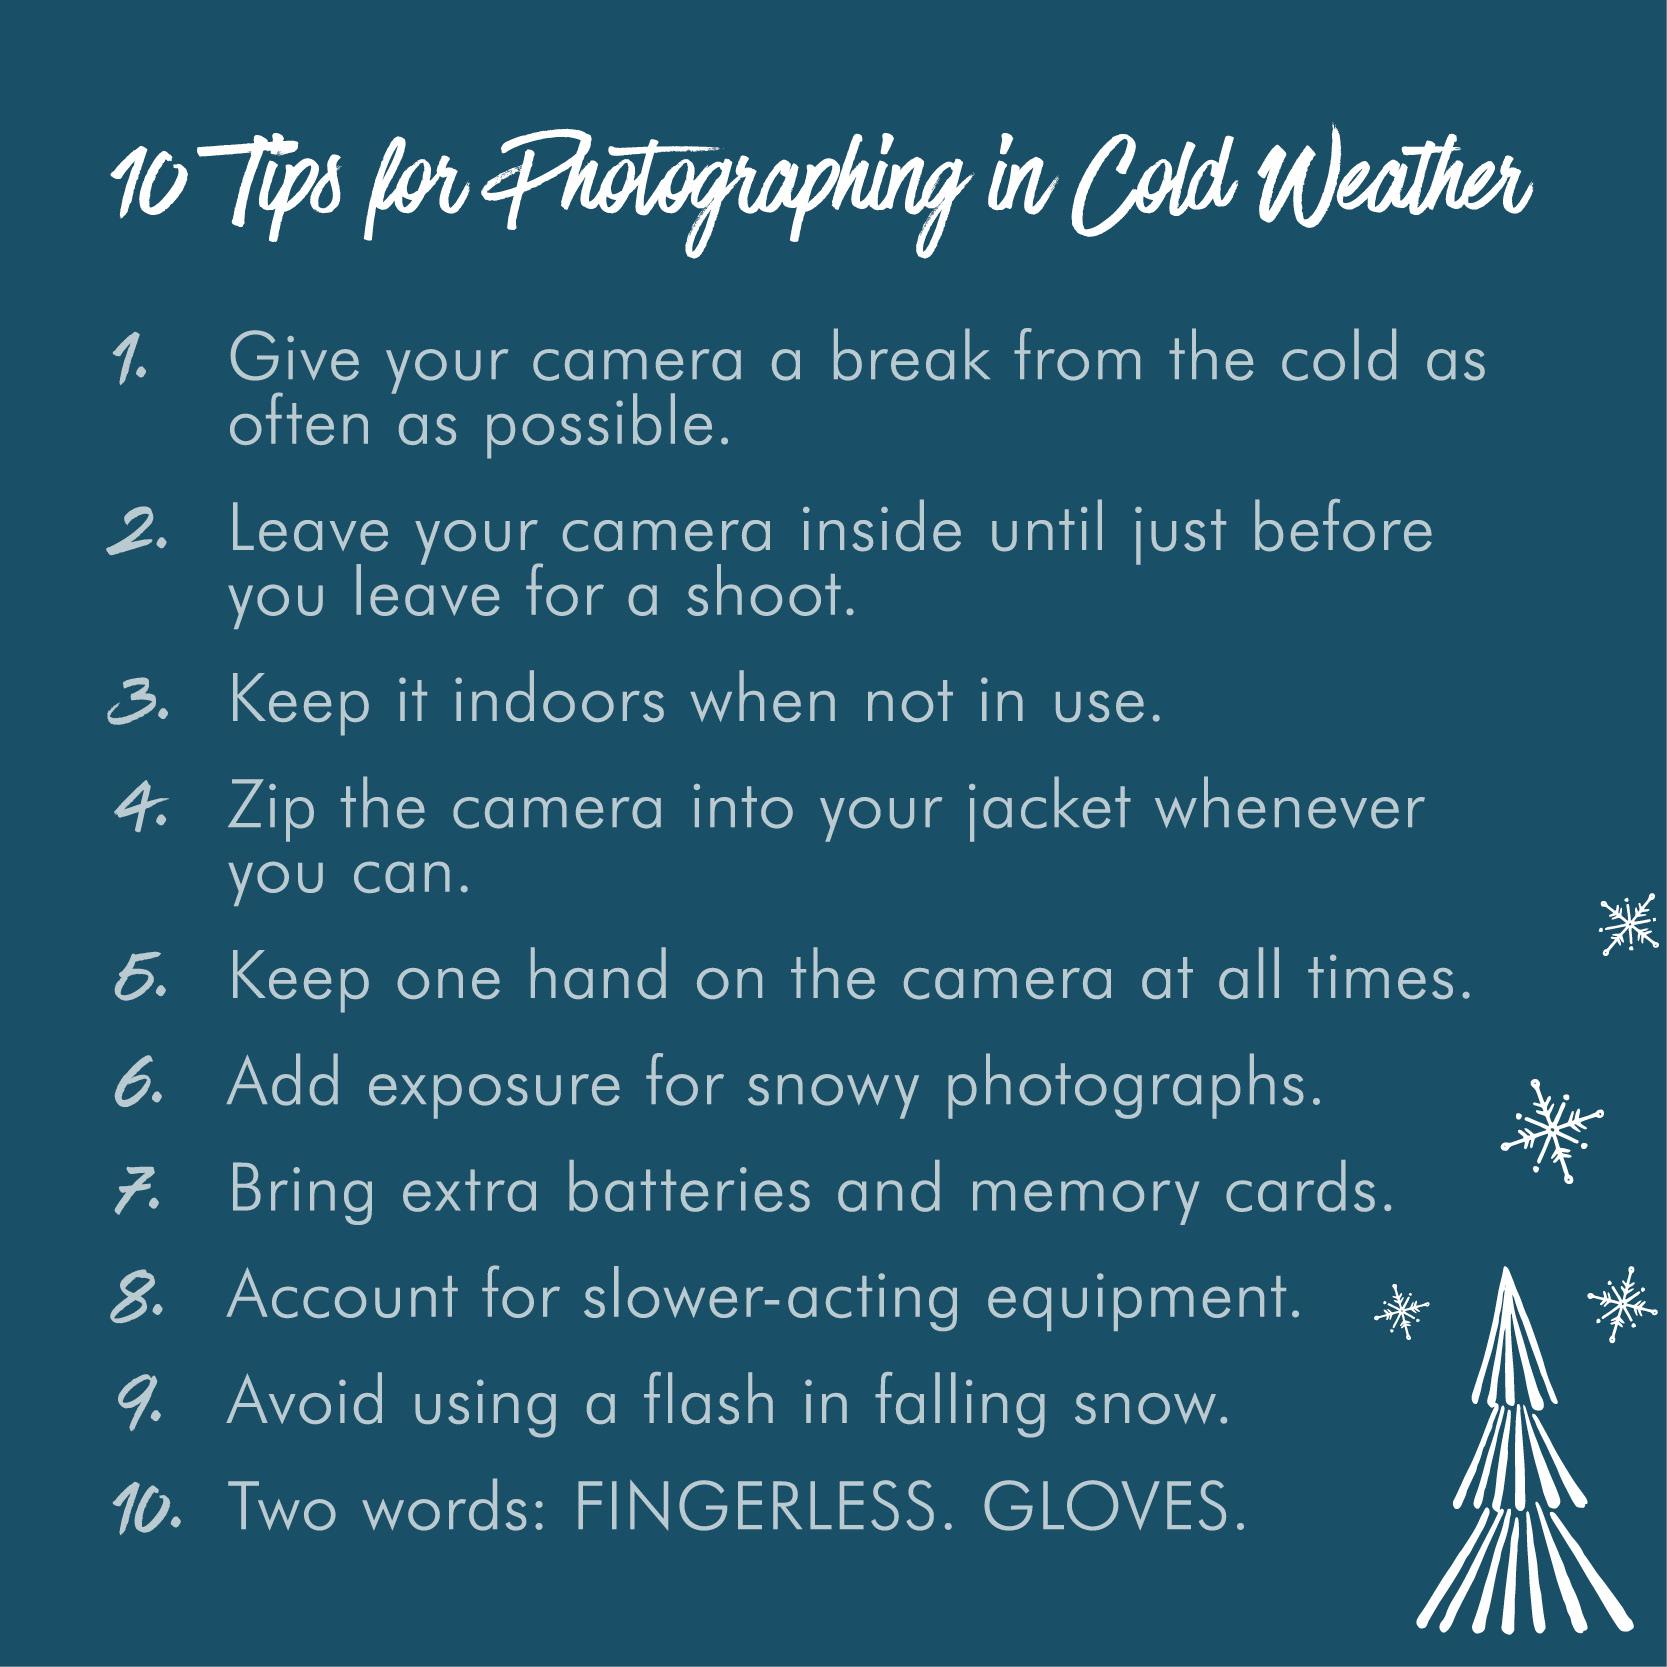 List of 10 tips for photographing in cold weather